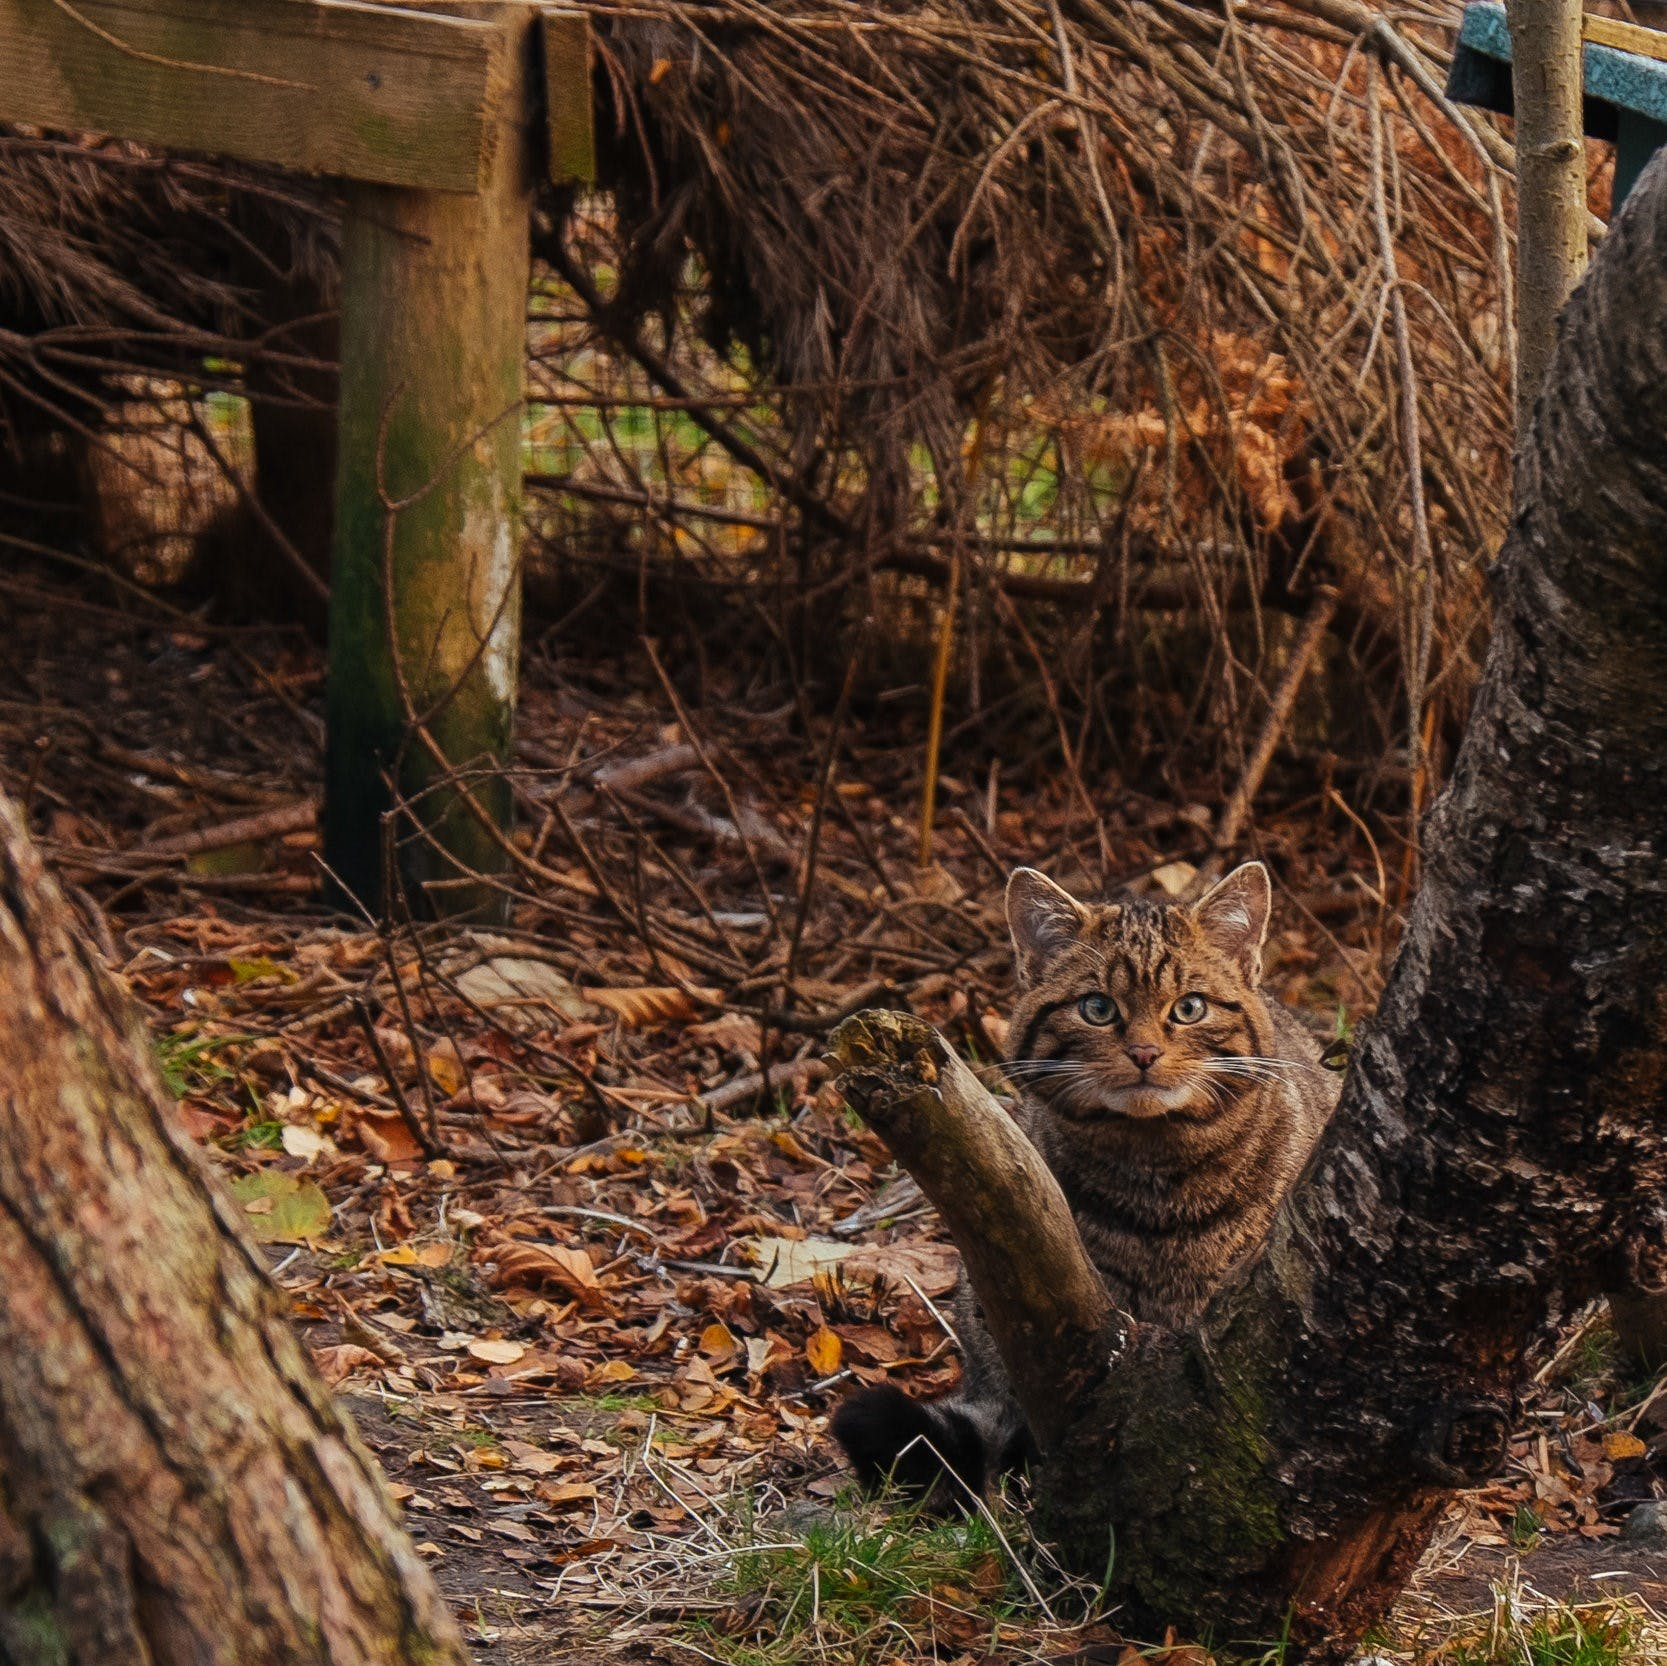 A Scottish wildcat kitten crouches behind a tree in its enclosure at Alladale Wilderness Reserve